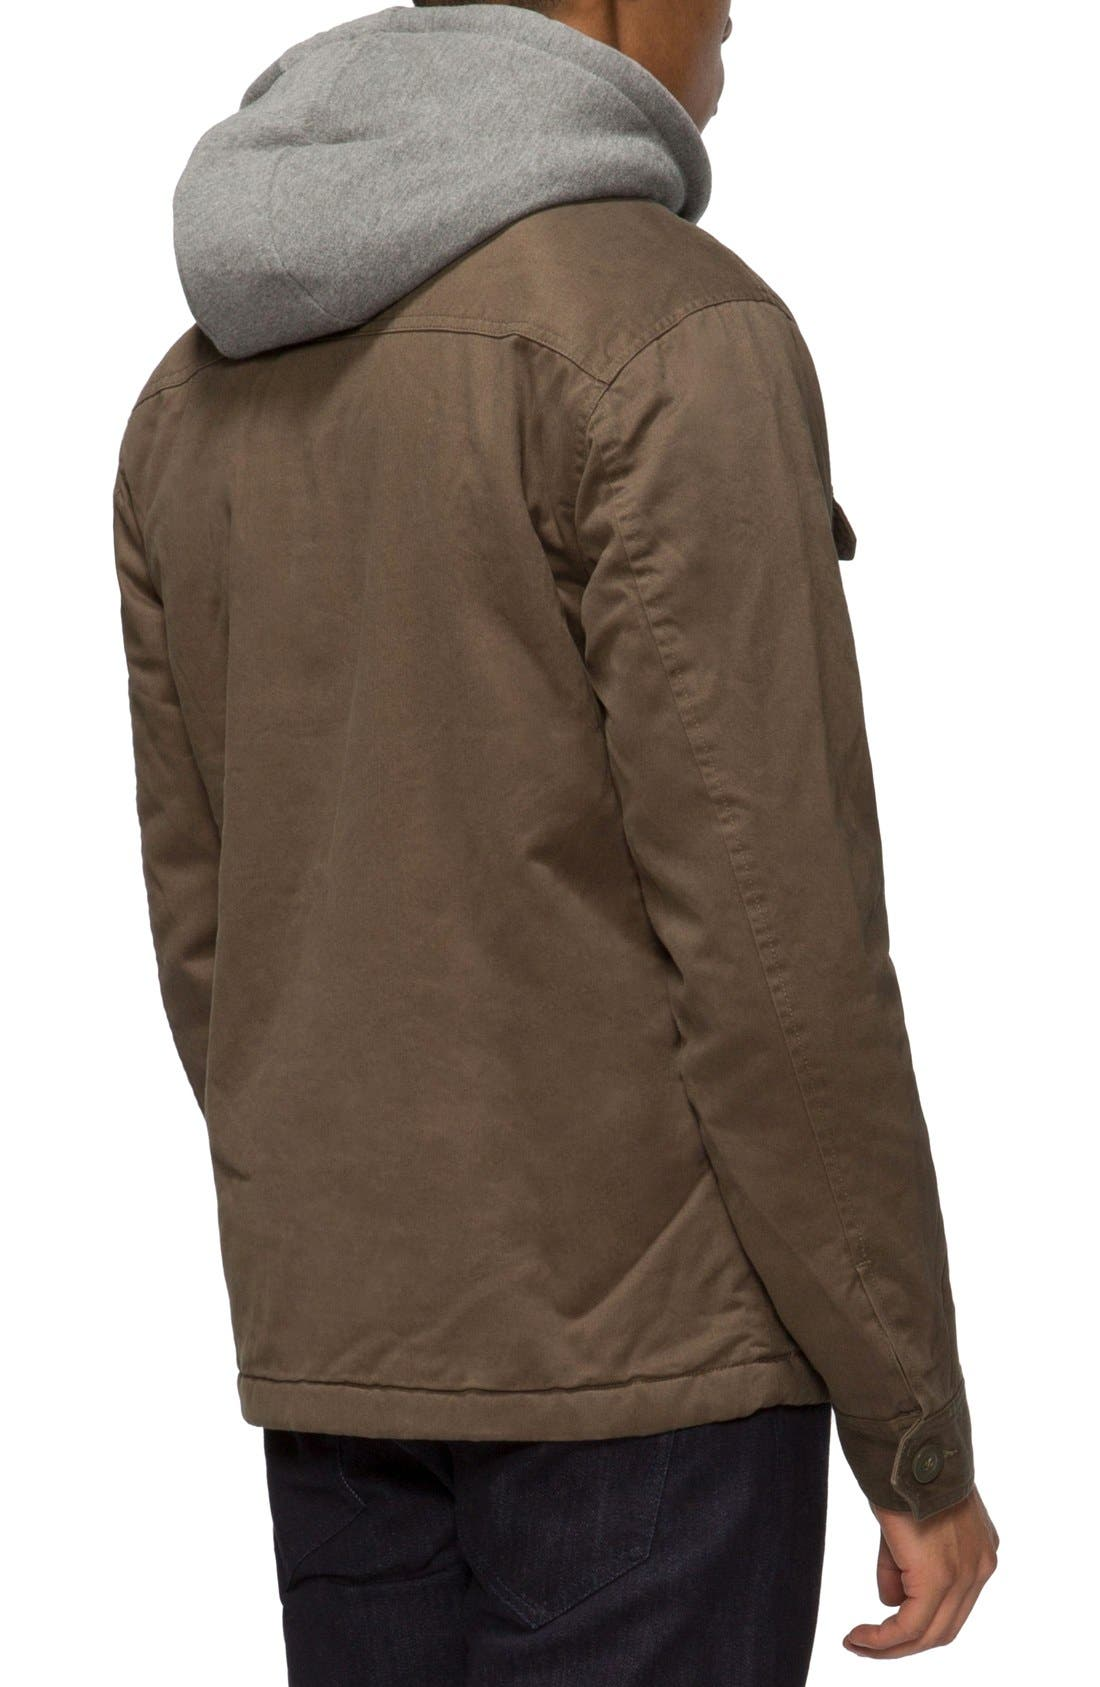 Droogs Plus Field Jacket with Detachable Hood,                             Alternate thumbnail 2, color,                             Olive/ Heather Grey